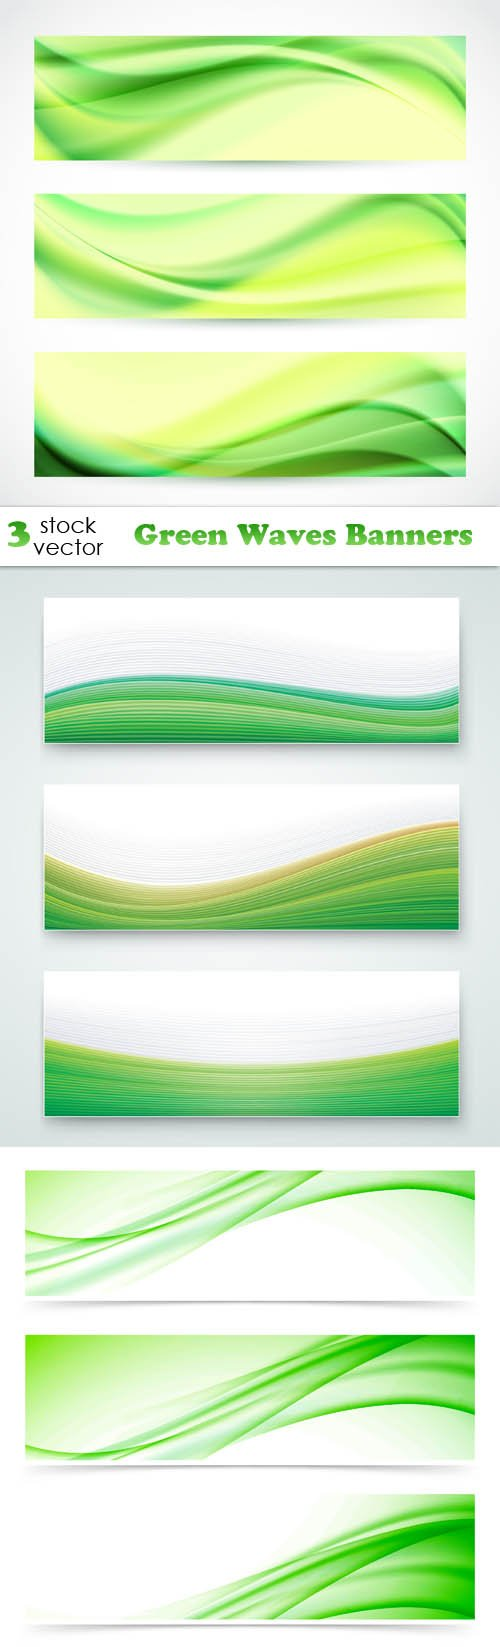 Vectors - Green Waves Banners